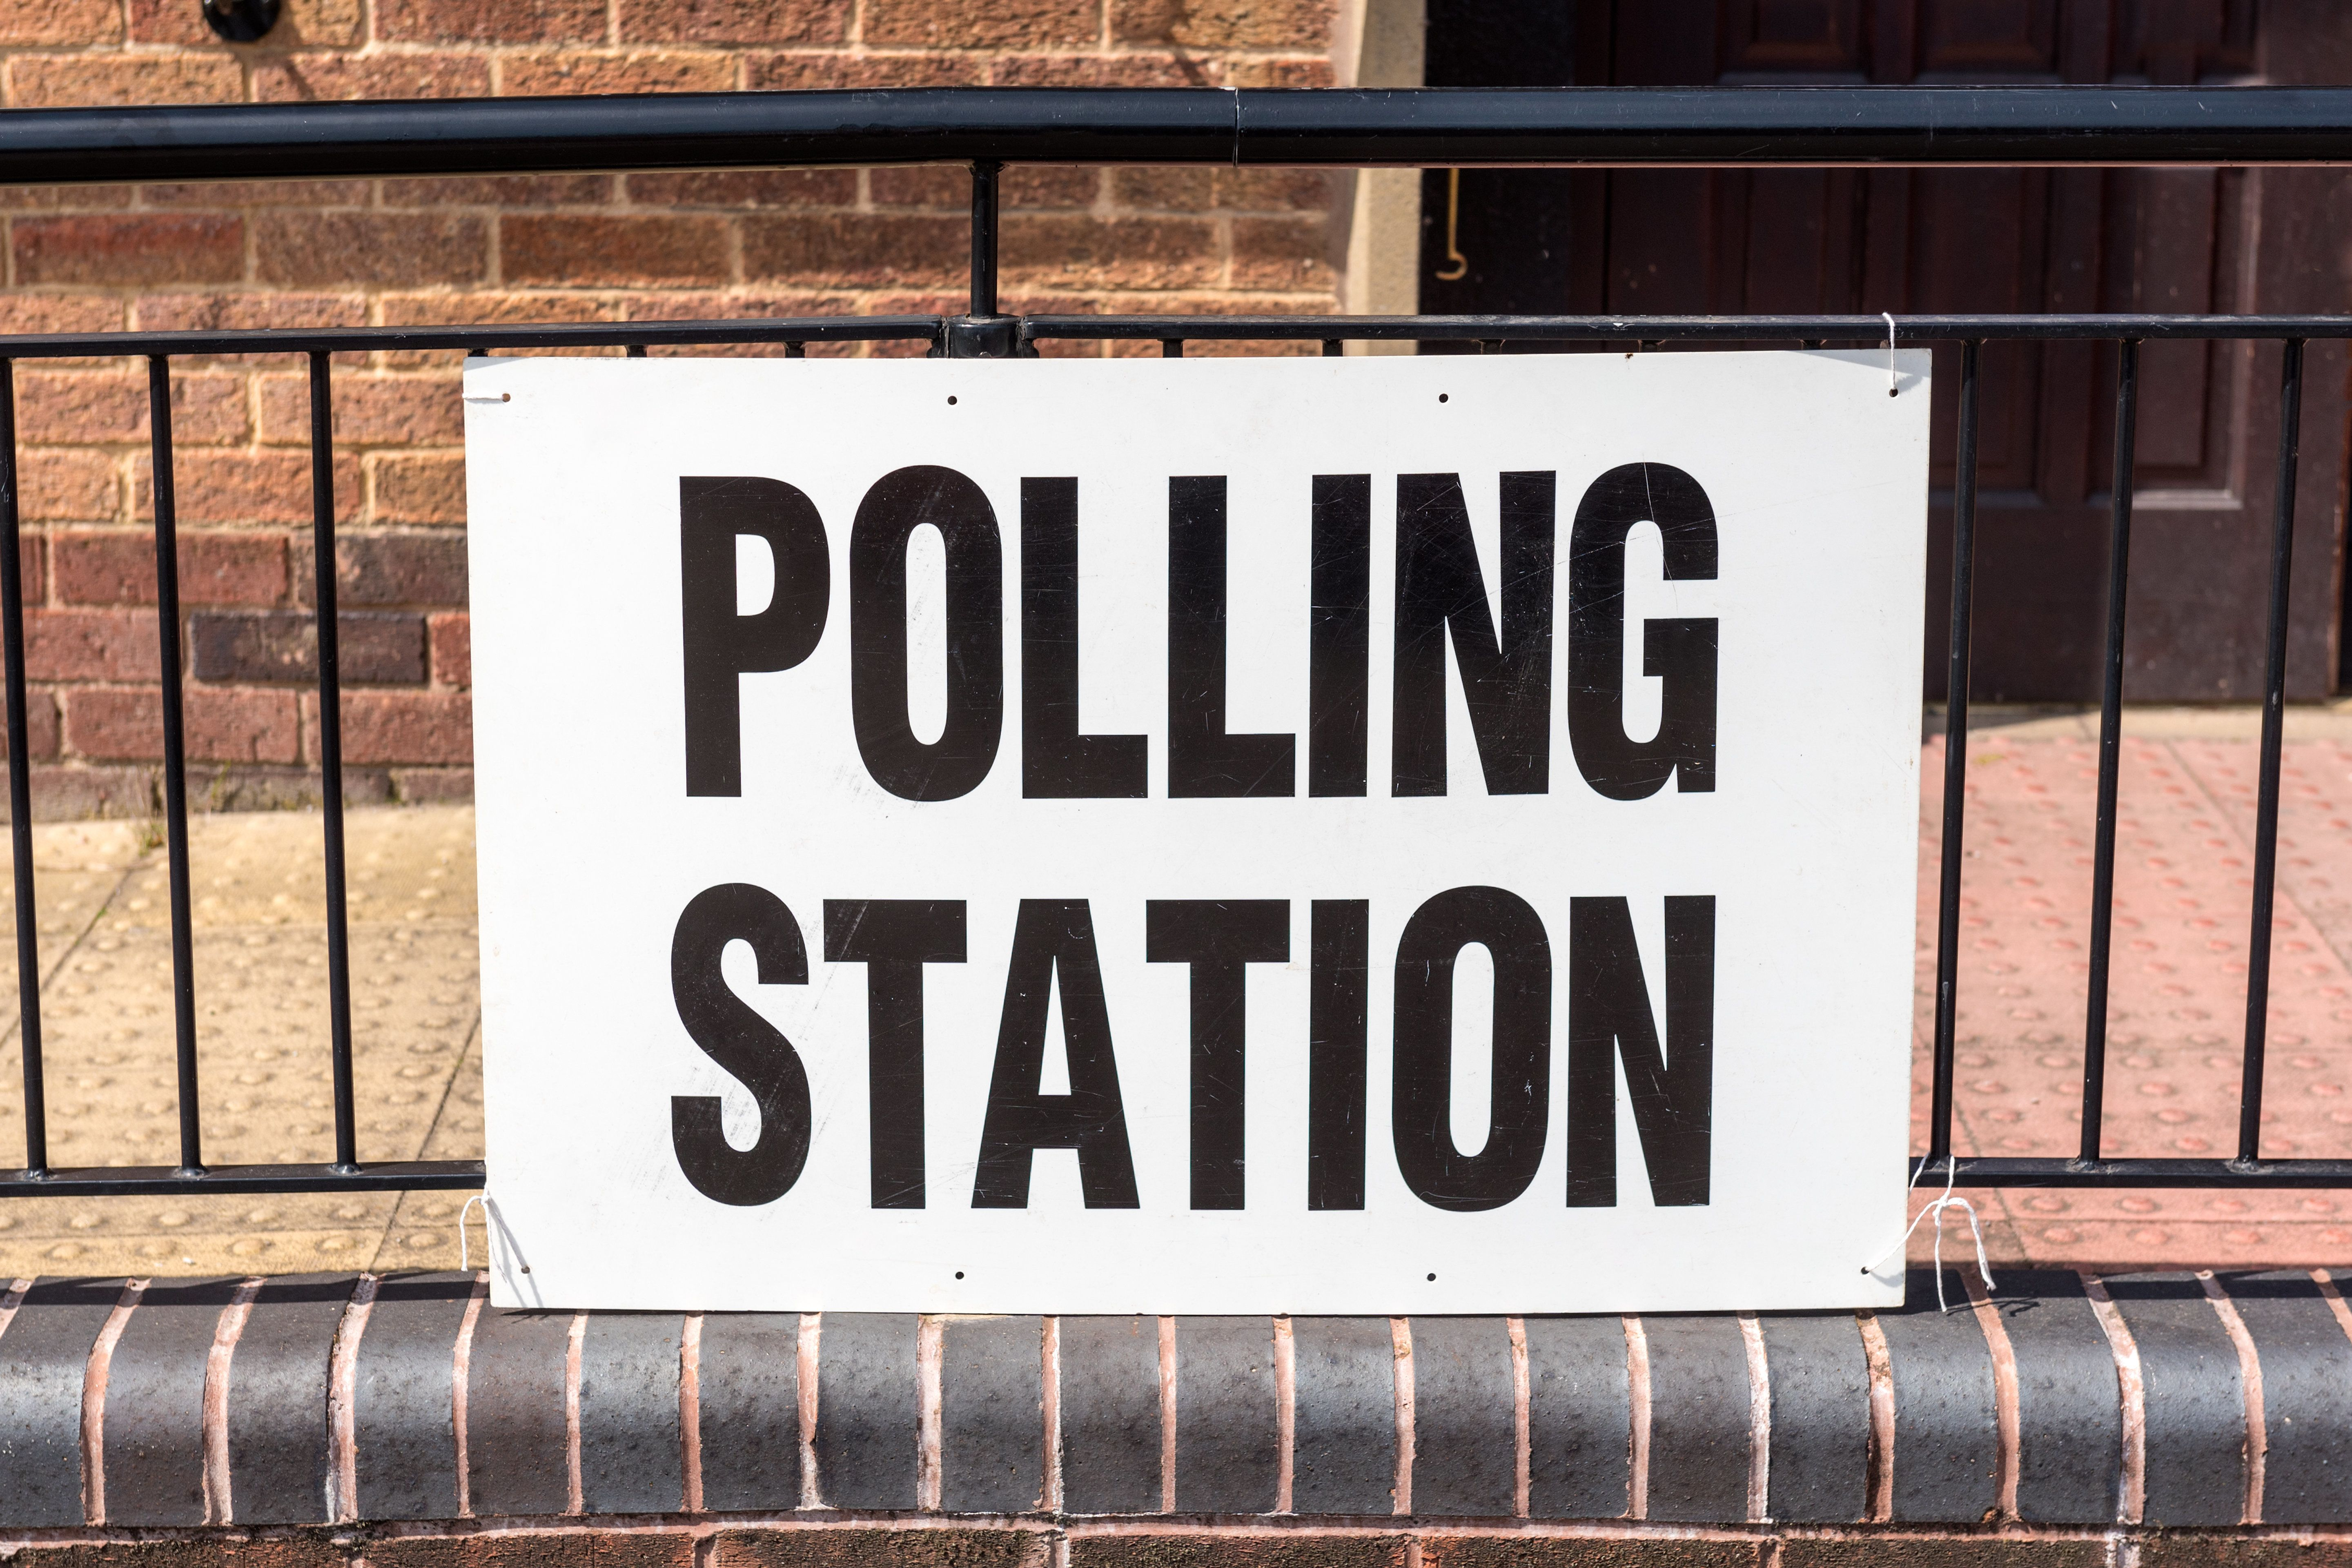 You can nominate someone to vote on your behalf if you are unable to attend the polling